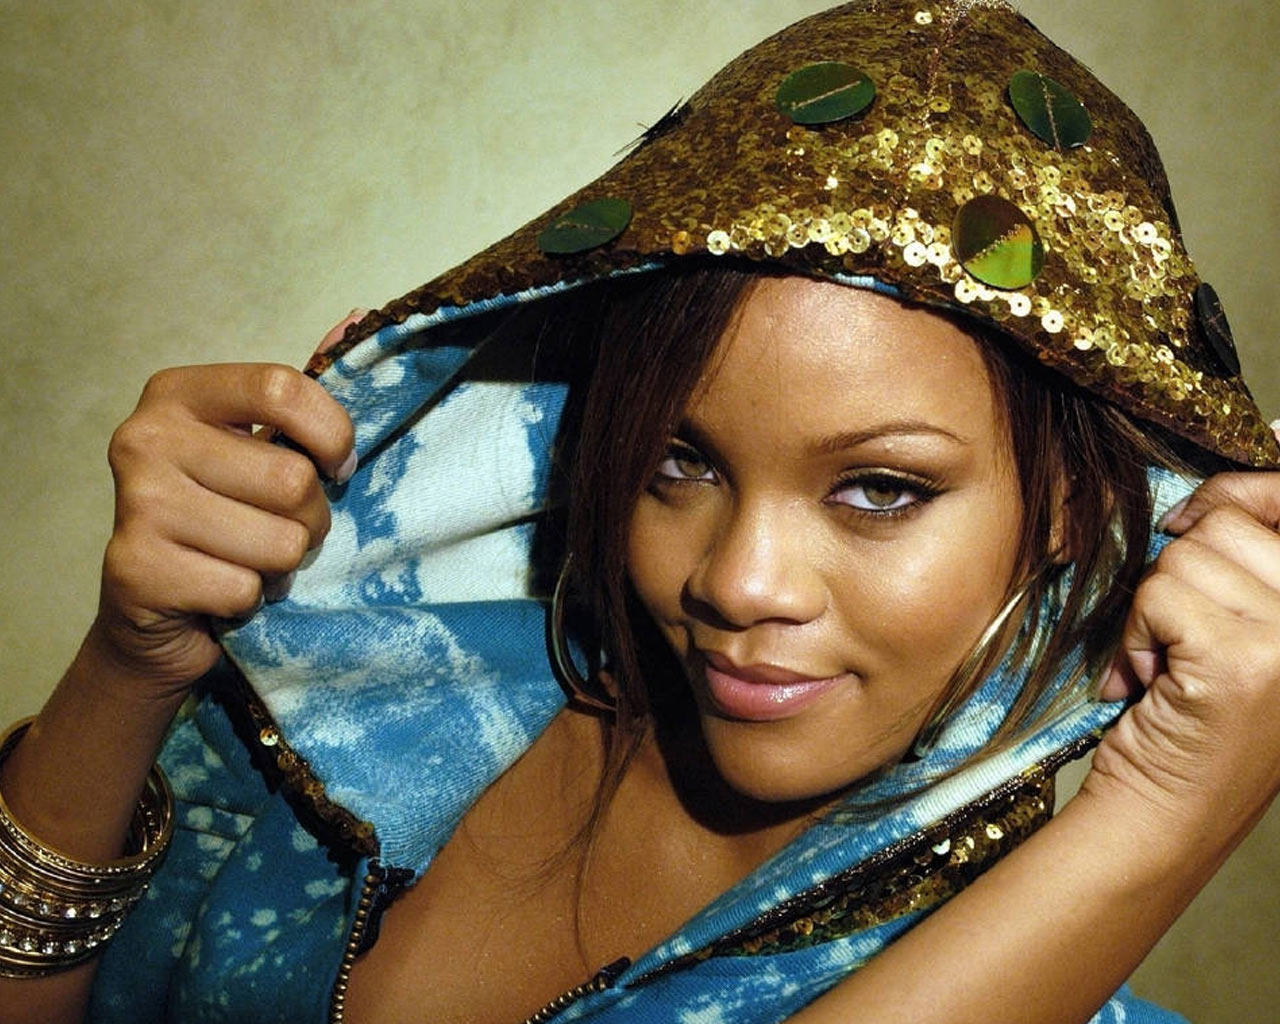 Wanna shop like Rihanna? Topdust is a soon-to-launch pop music shopping site